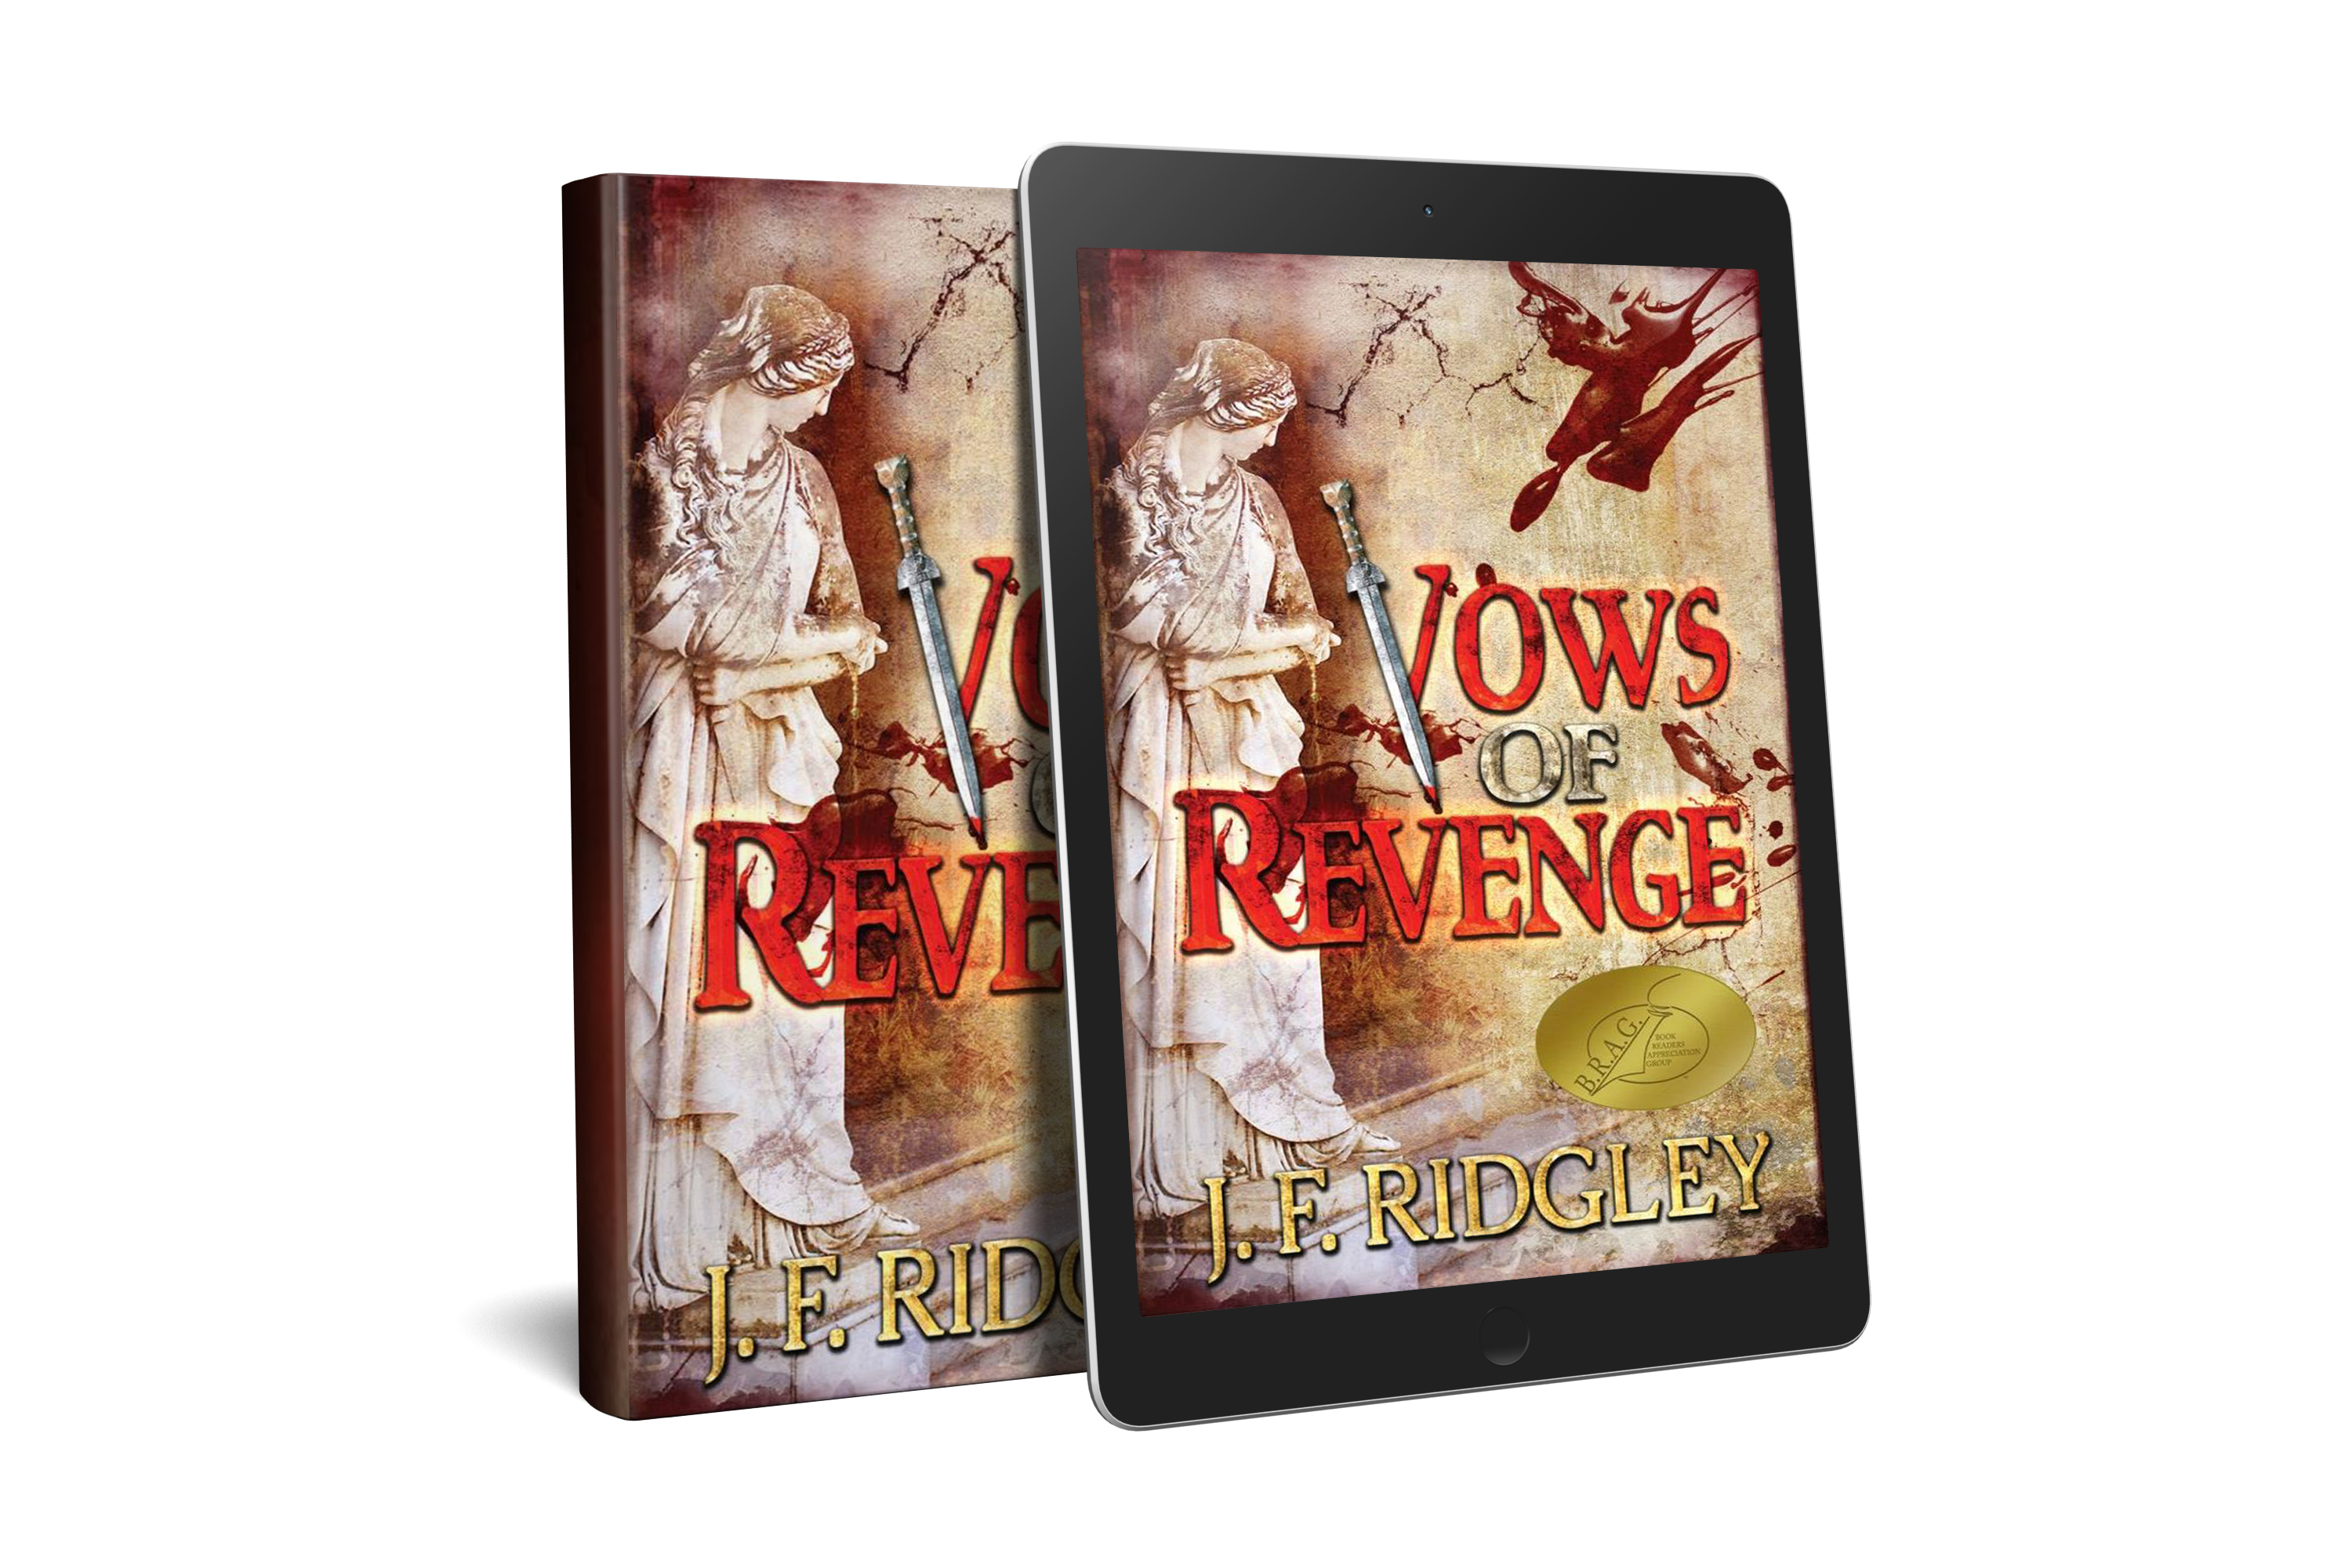 Vows of Revenge by JF Ridgley